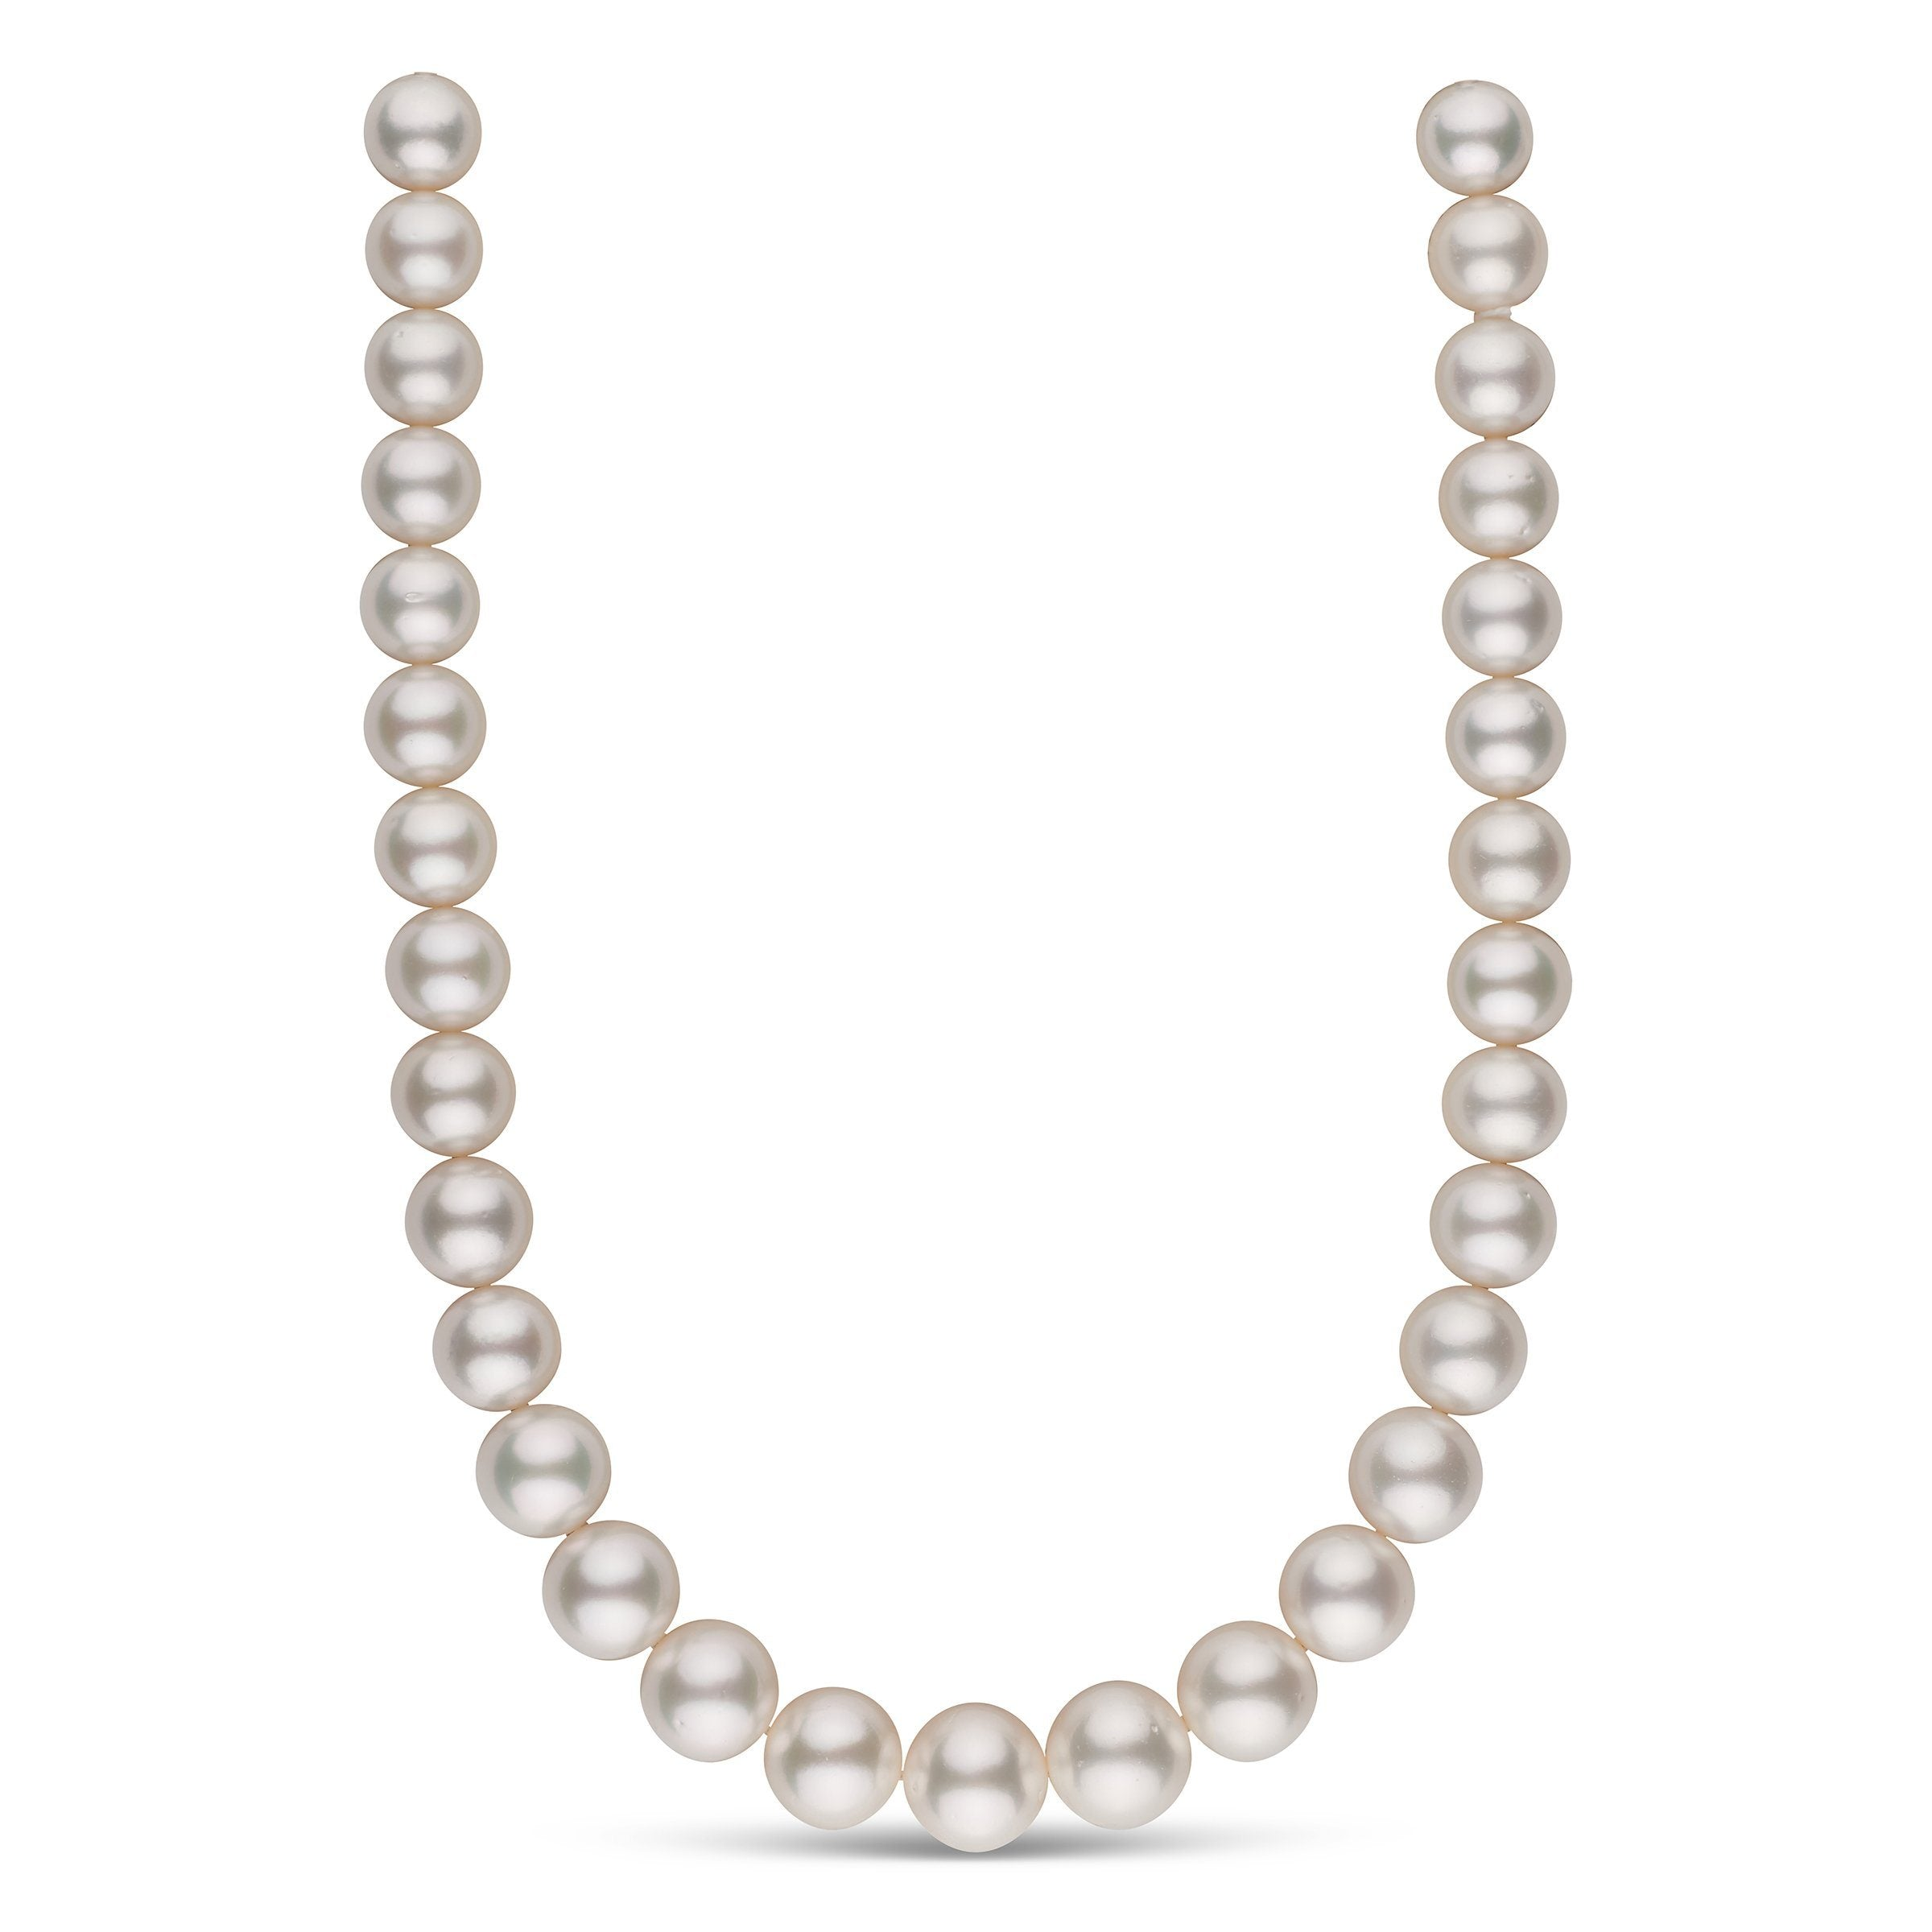 Clair de Lune White South Sea Pearl Necklace